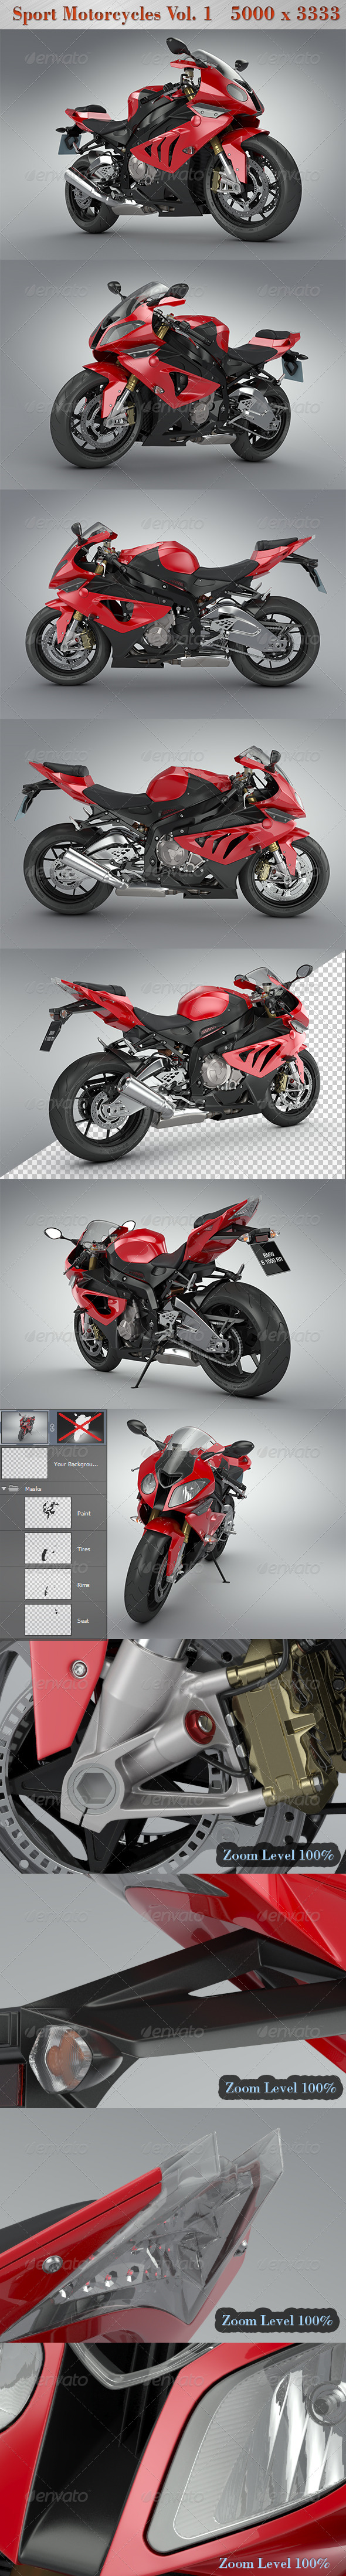 Sport Motorcycles Vol.1 - Miscellaneous 3D Renders